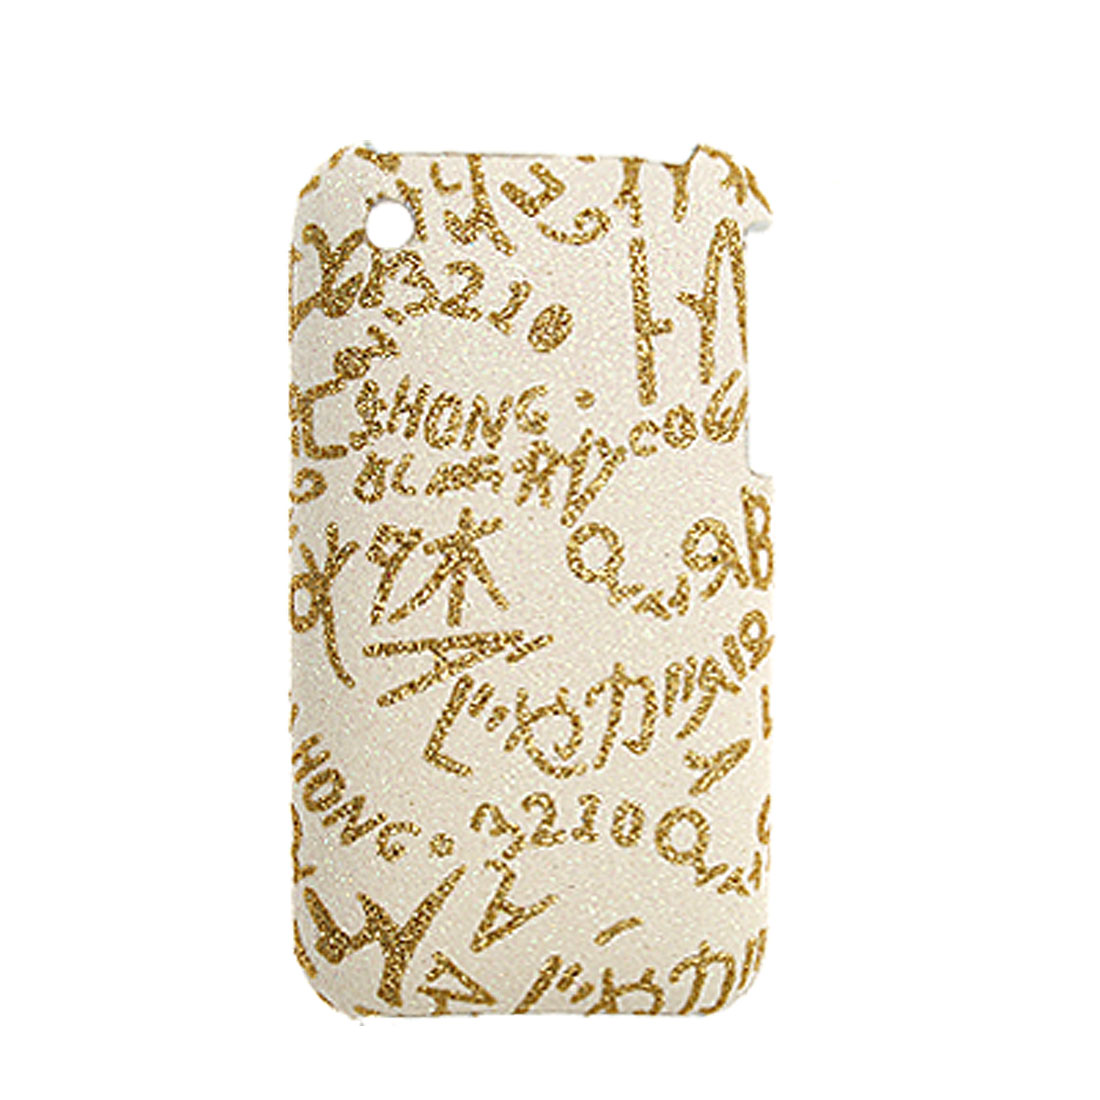 Hard Messy Letter Pattern Case Cover for iPhone 3G 3GS - image 1 of 1